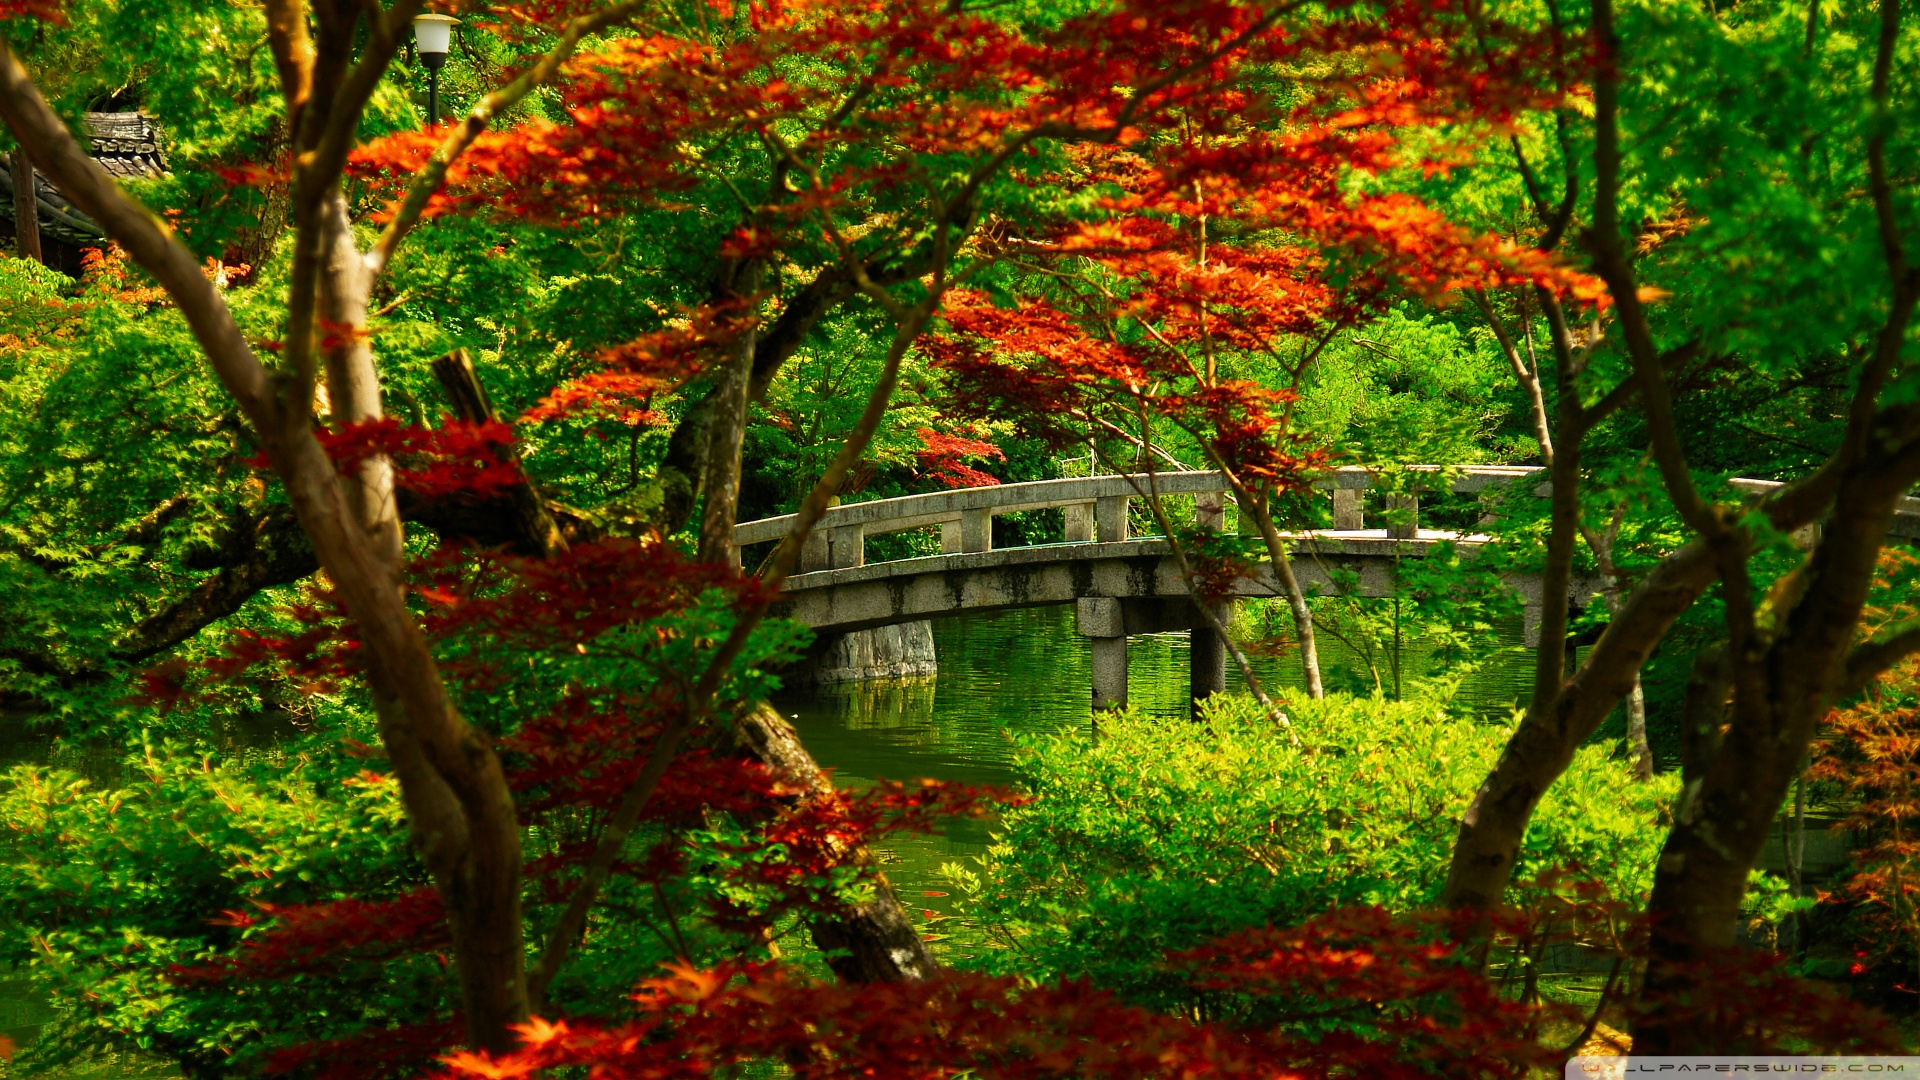 Download Japanese Garden Kyoto Wallpaper 1920x1080 1920x1080